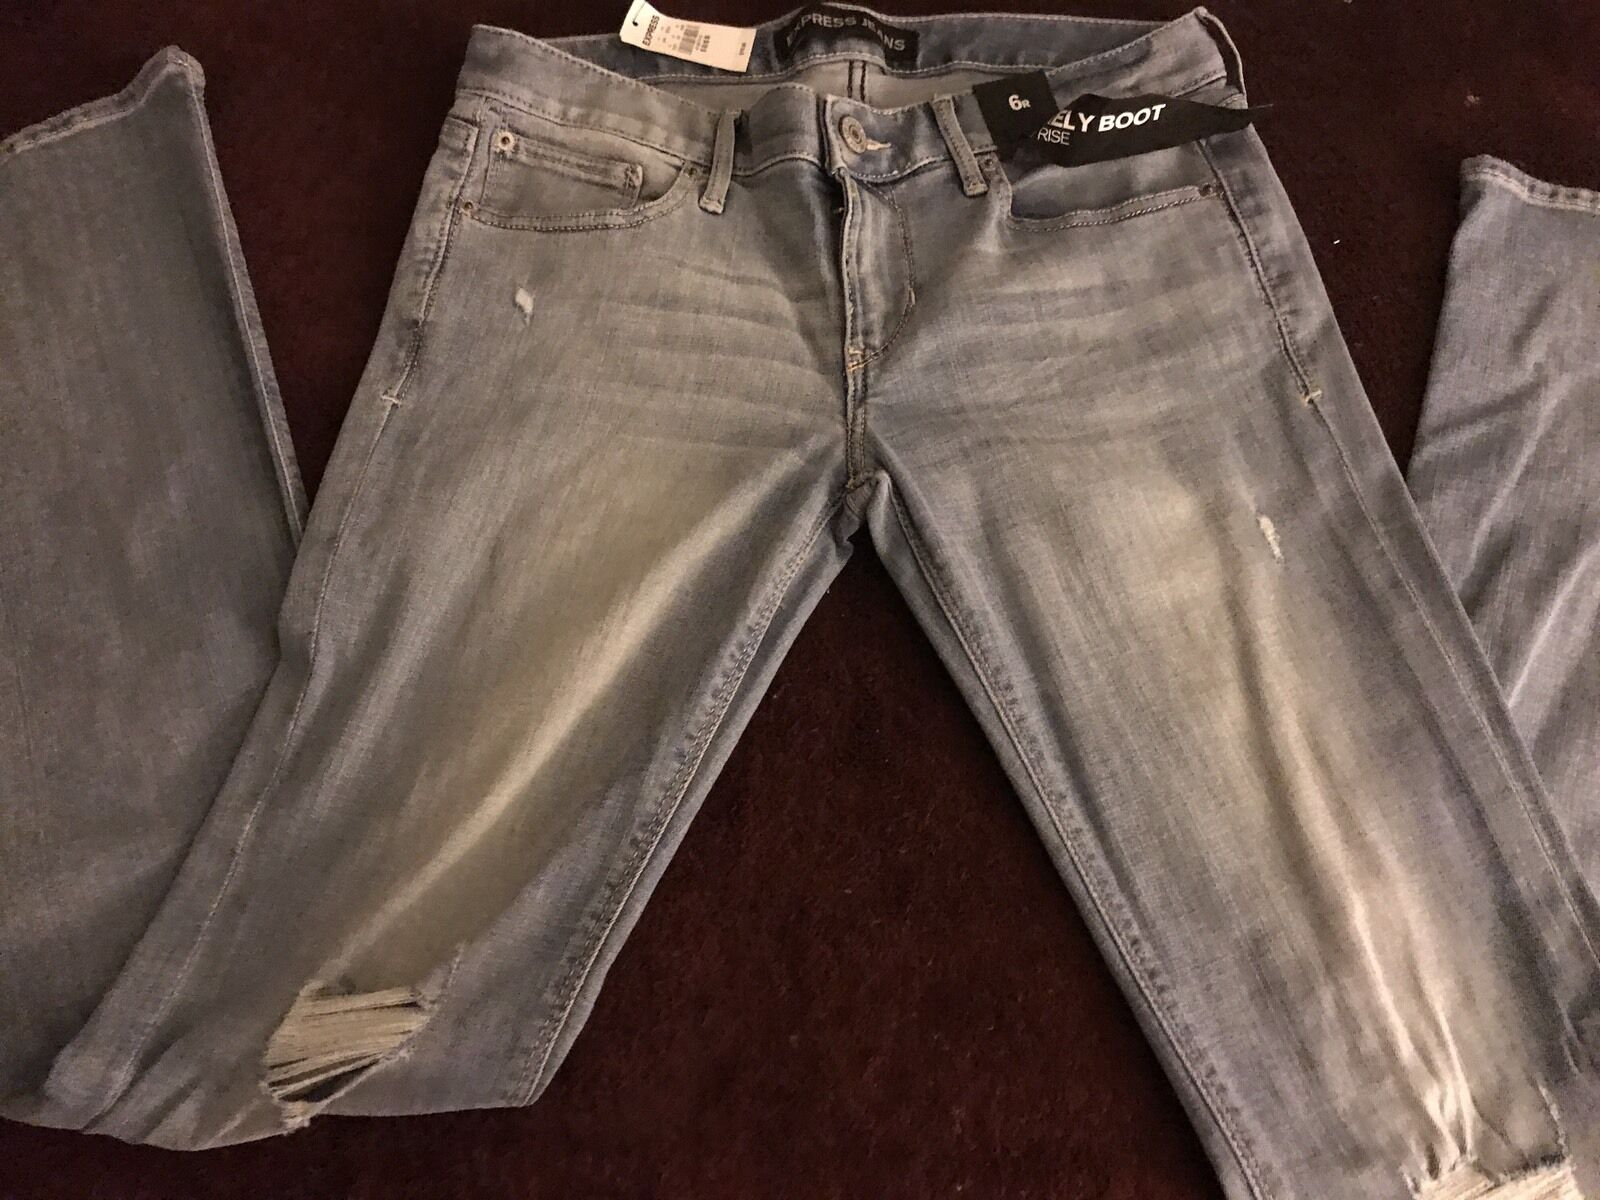 NWT  EXPRESS BARELY BOOT LOW RISE LIGHT WASH SLIGHT DISTRESSED WOMENS SZ 6 JEANS